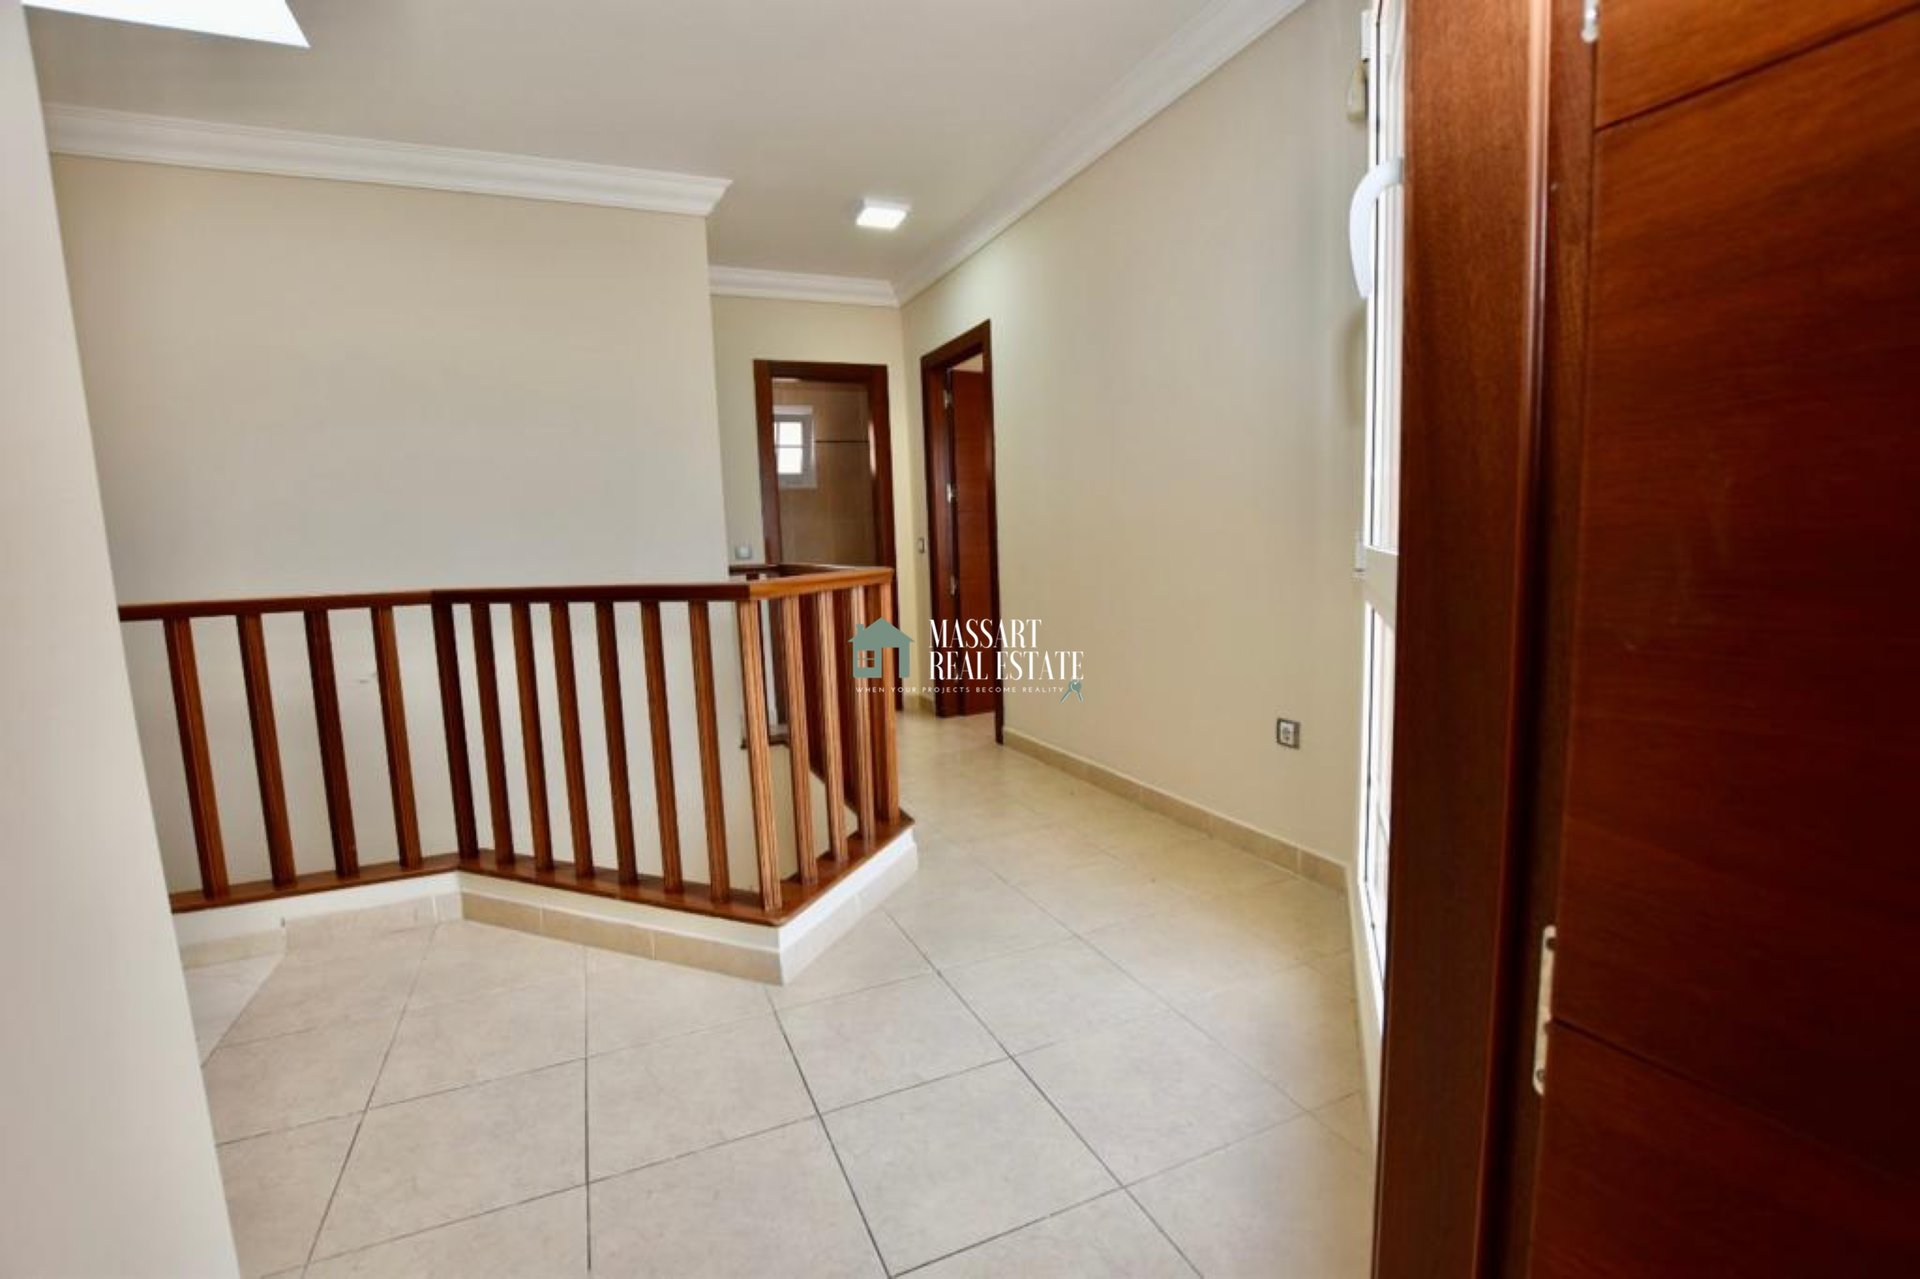 For sale beautiful townhouse located in one of the best residential complexes in Los Cristianos, Mesetas del Mar.